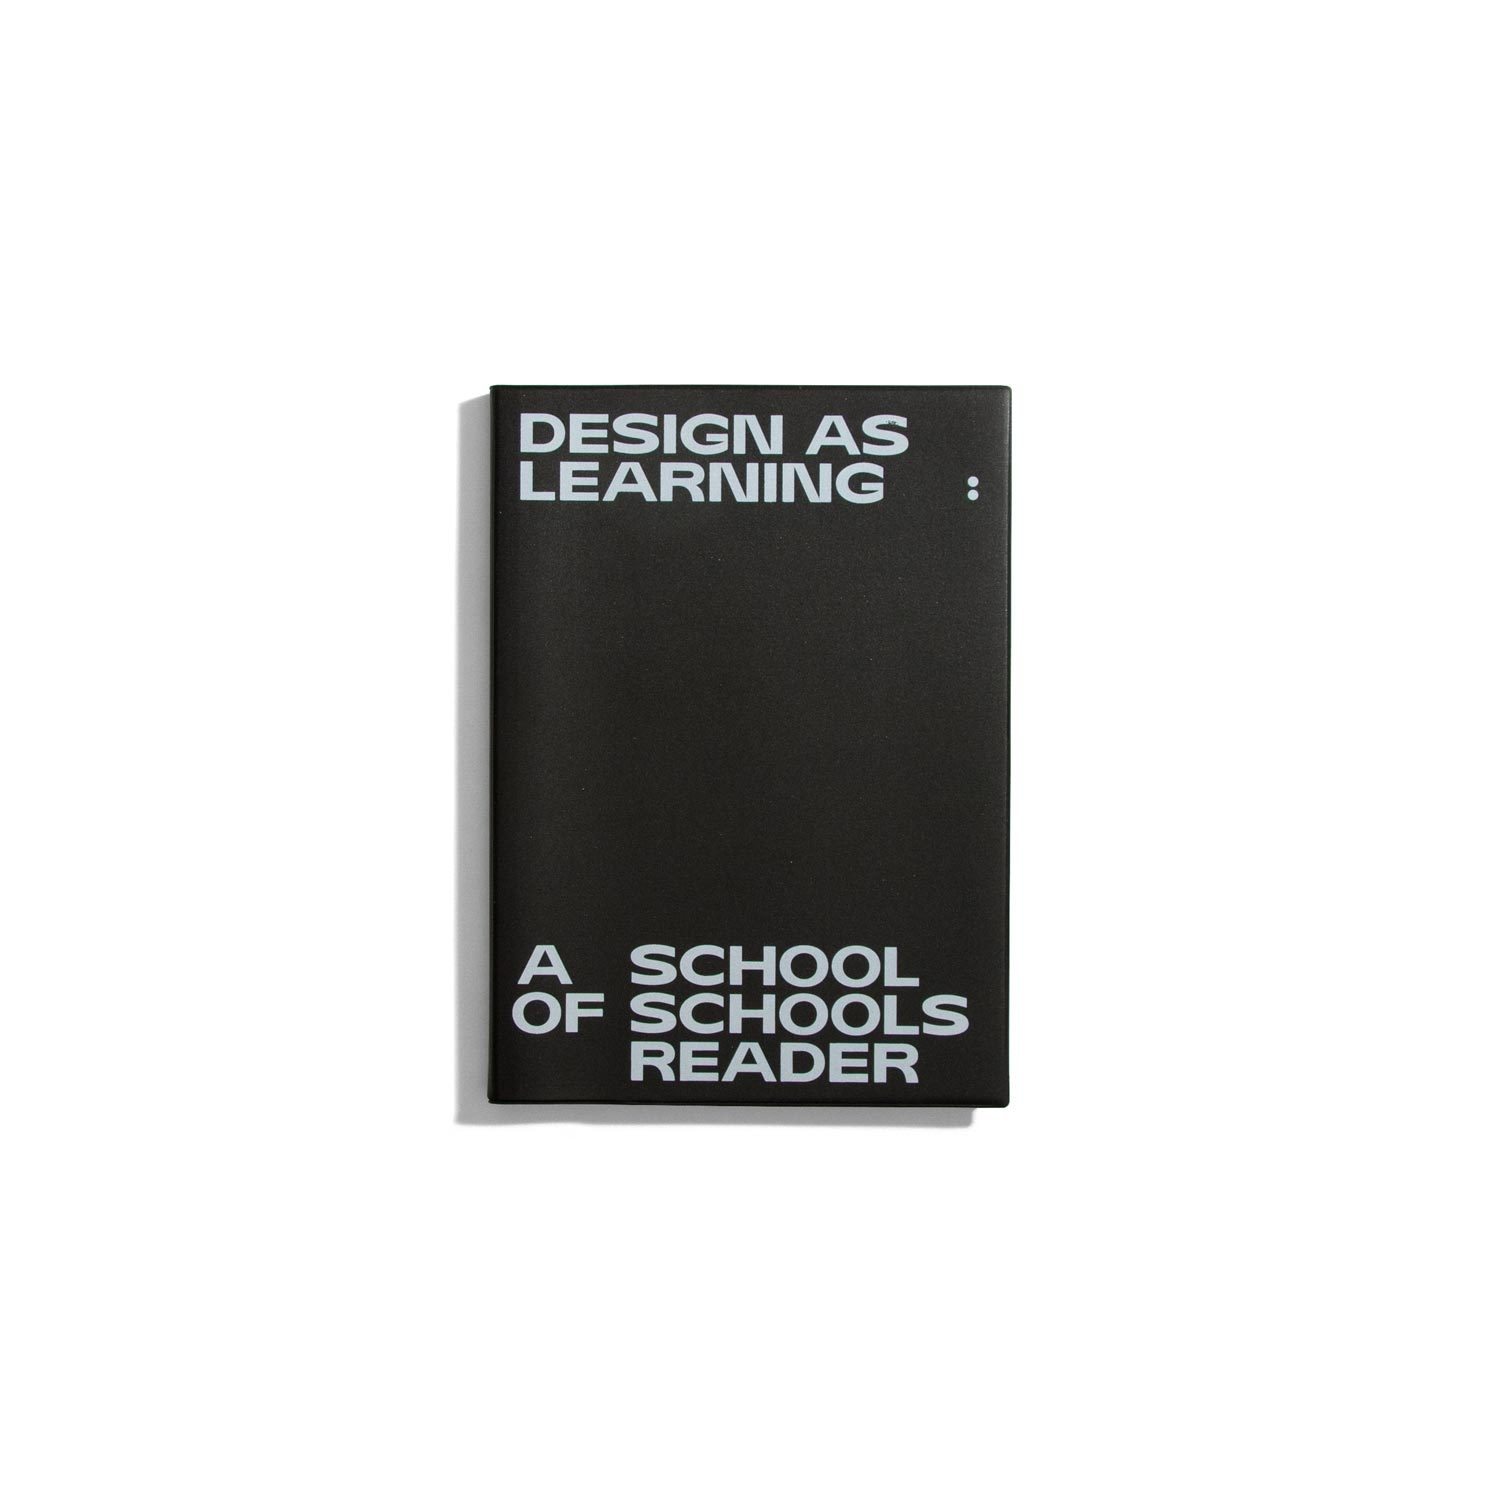 Design as Learning - A School of Schools Reader